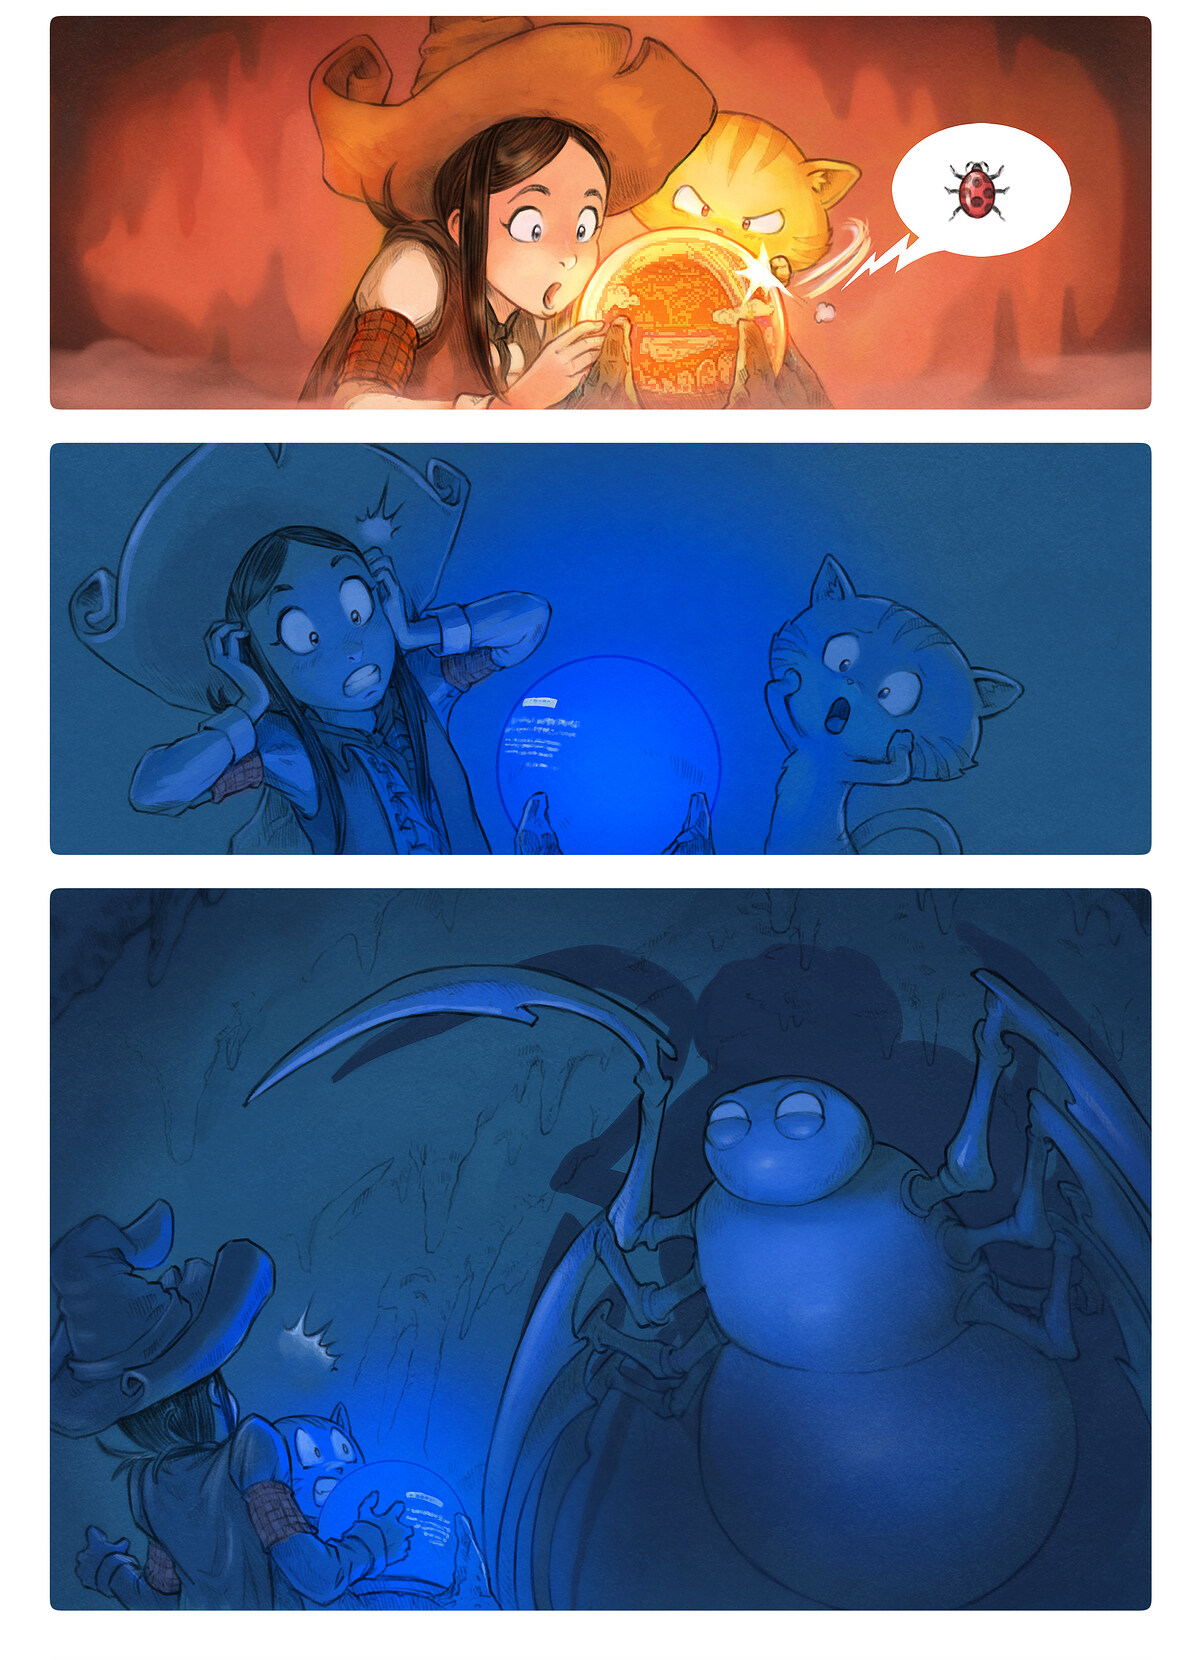 A webcomic page of Pepper&Carrot, Tập 15 [vi], trang 5